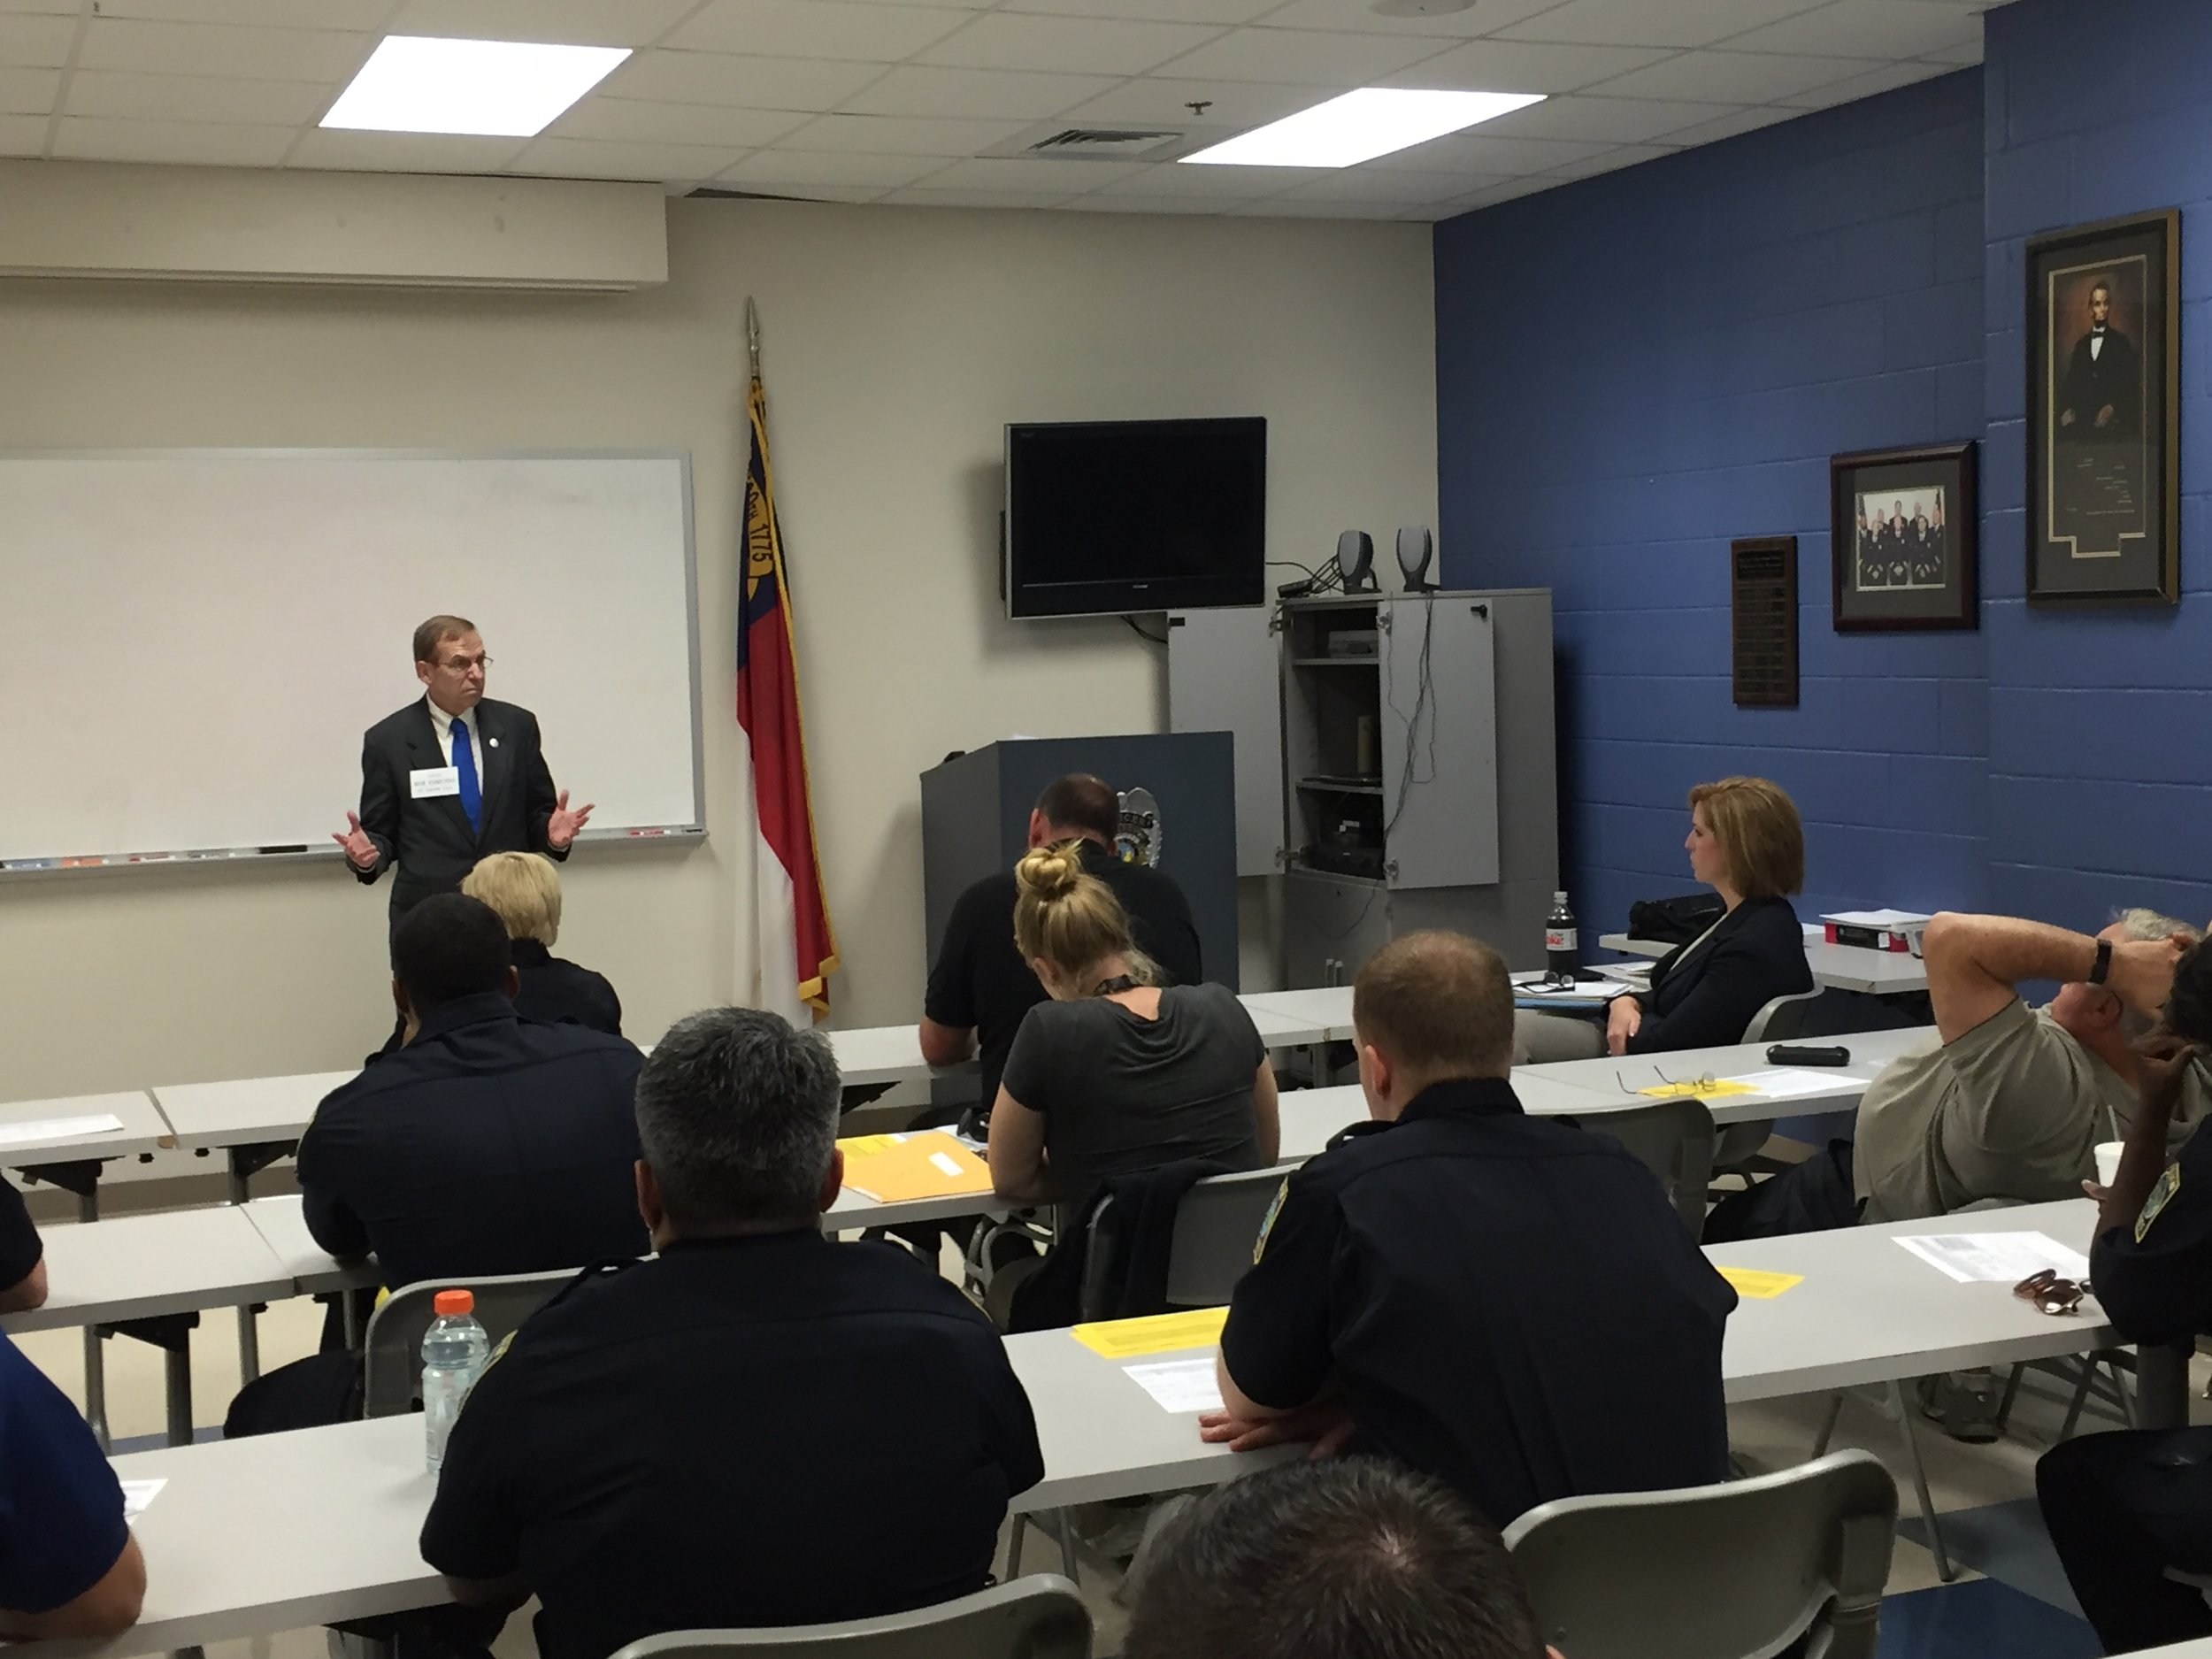 Teaching Supreme Court procedure to a Basic Law Enforcement Training class at the Wilmington Police Department, October 17, 2106.